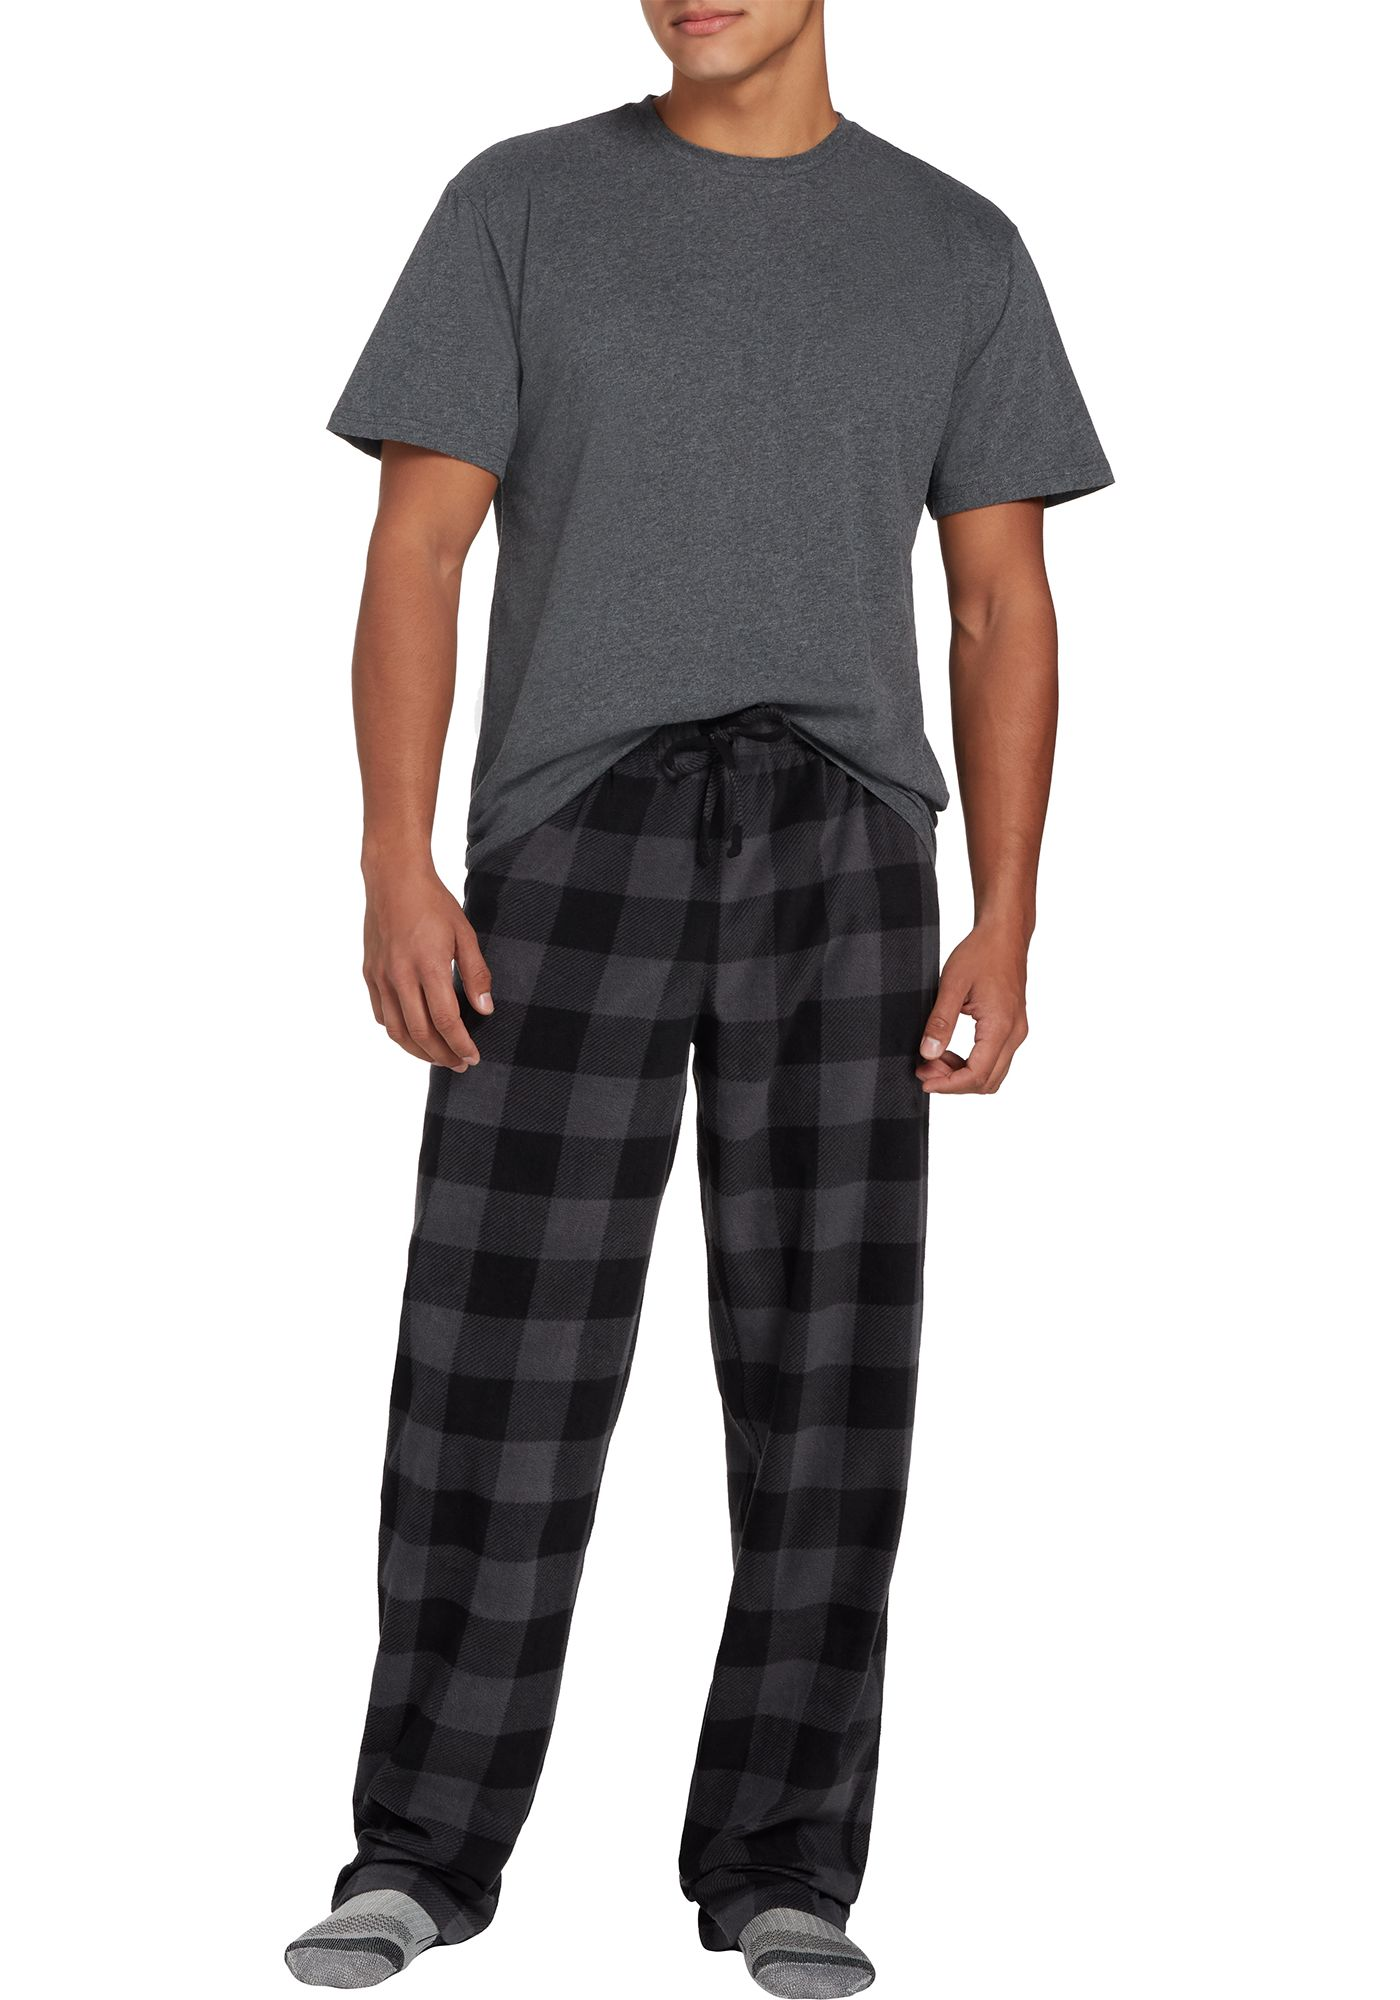 Field & Stream Men's Cozy 2-Piece Pajama Set